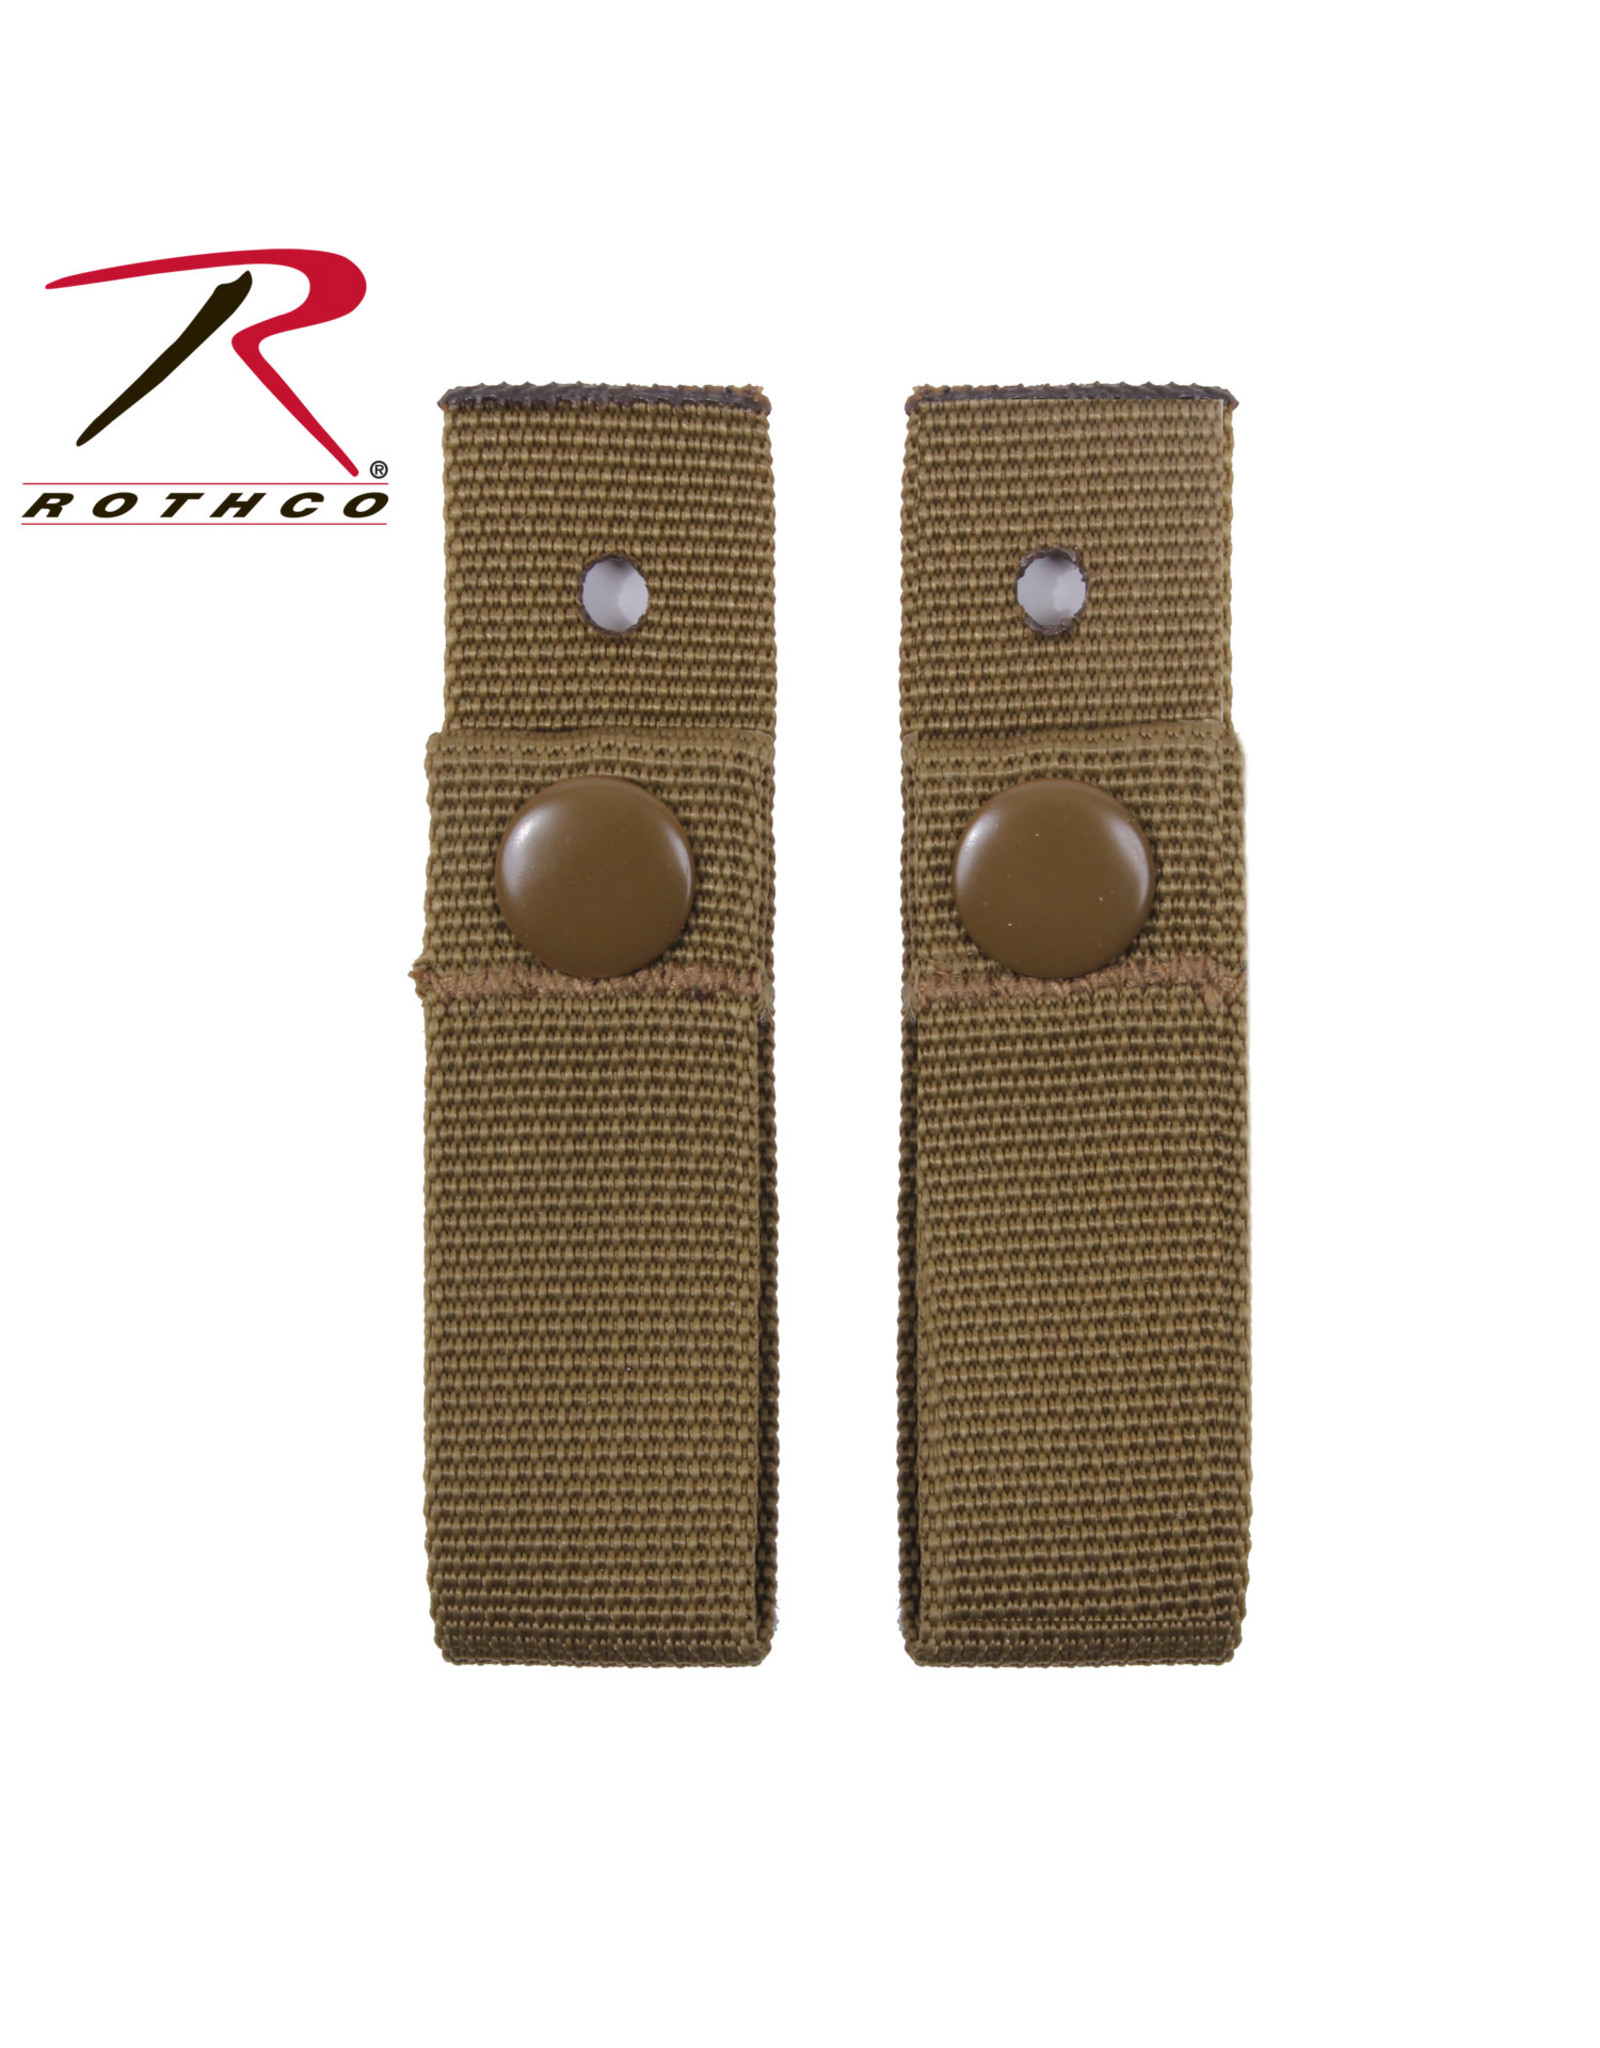 Eyewear Retention Straps - Set of 2